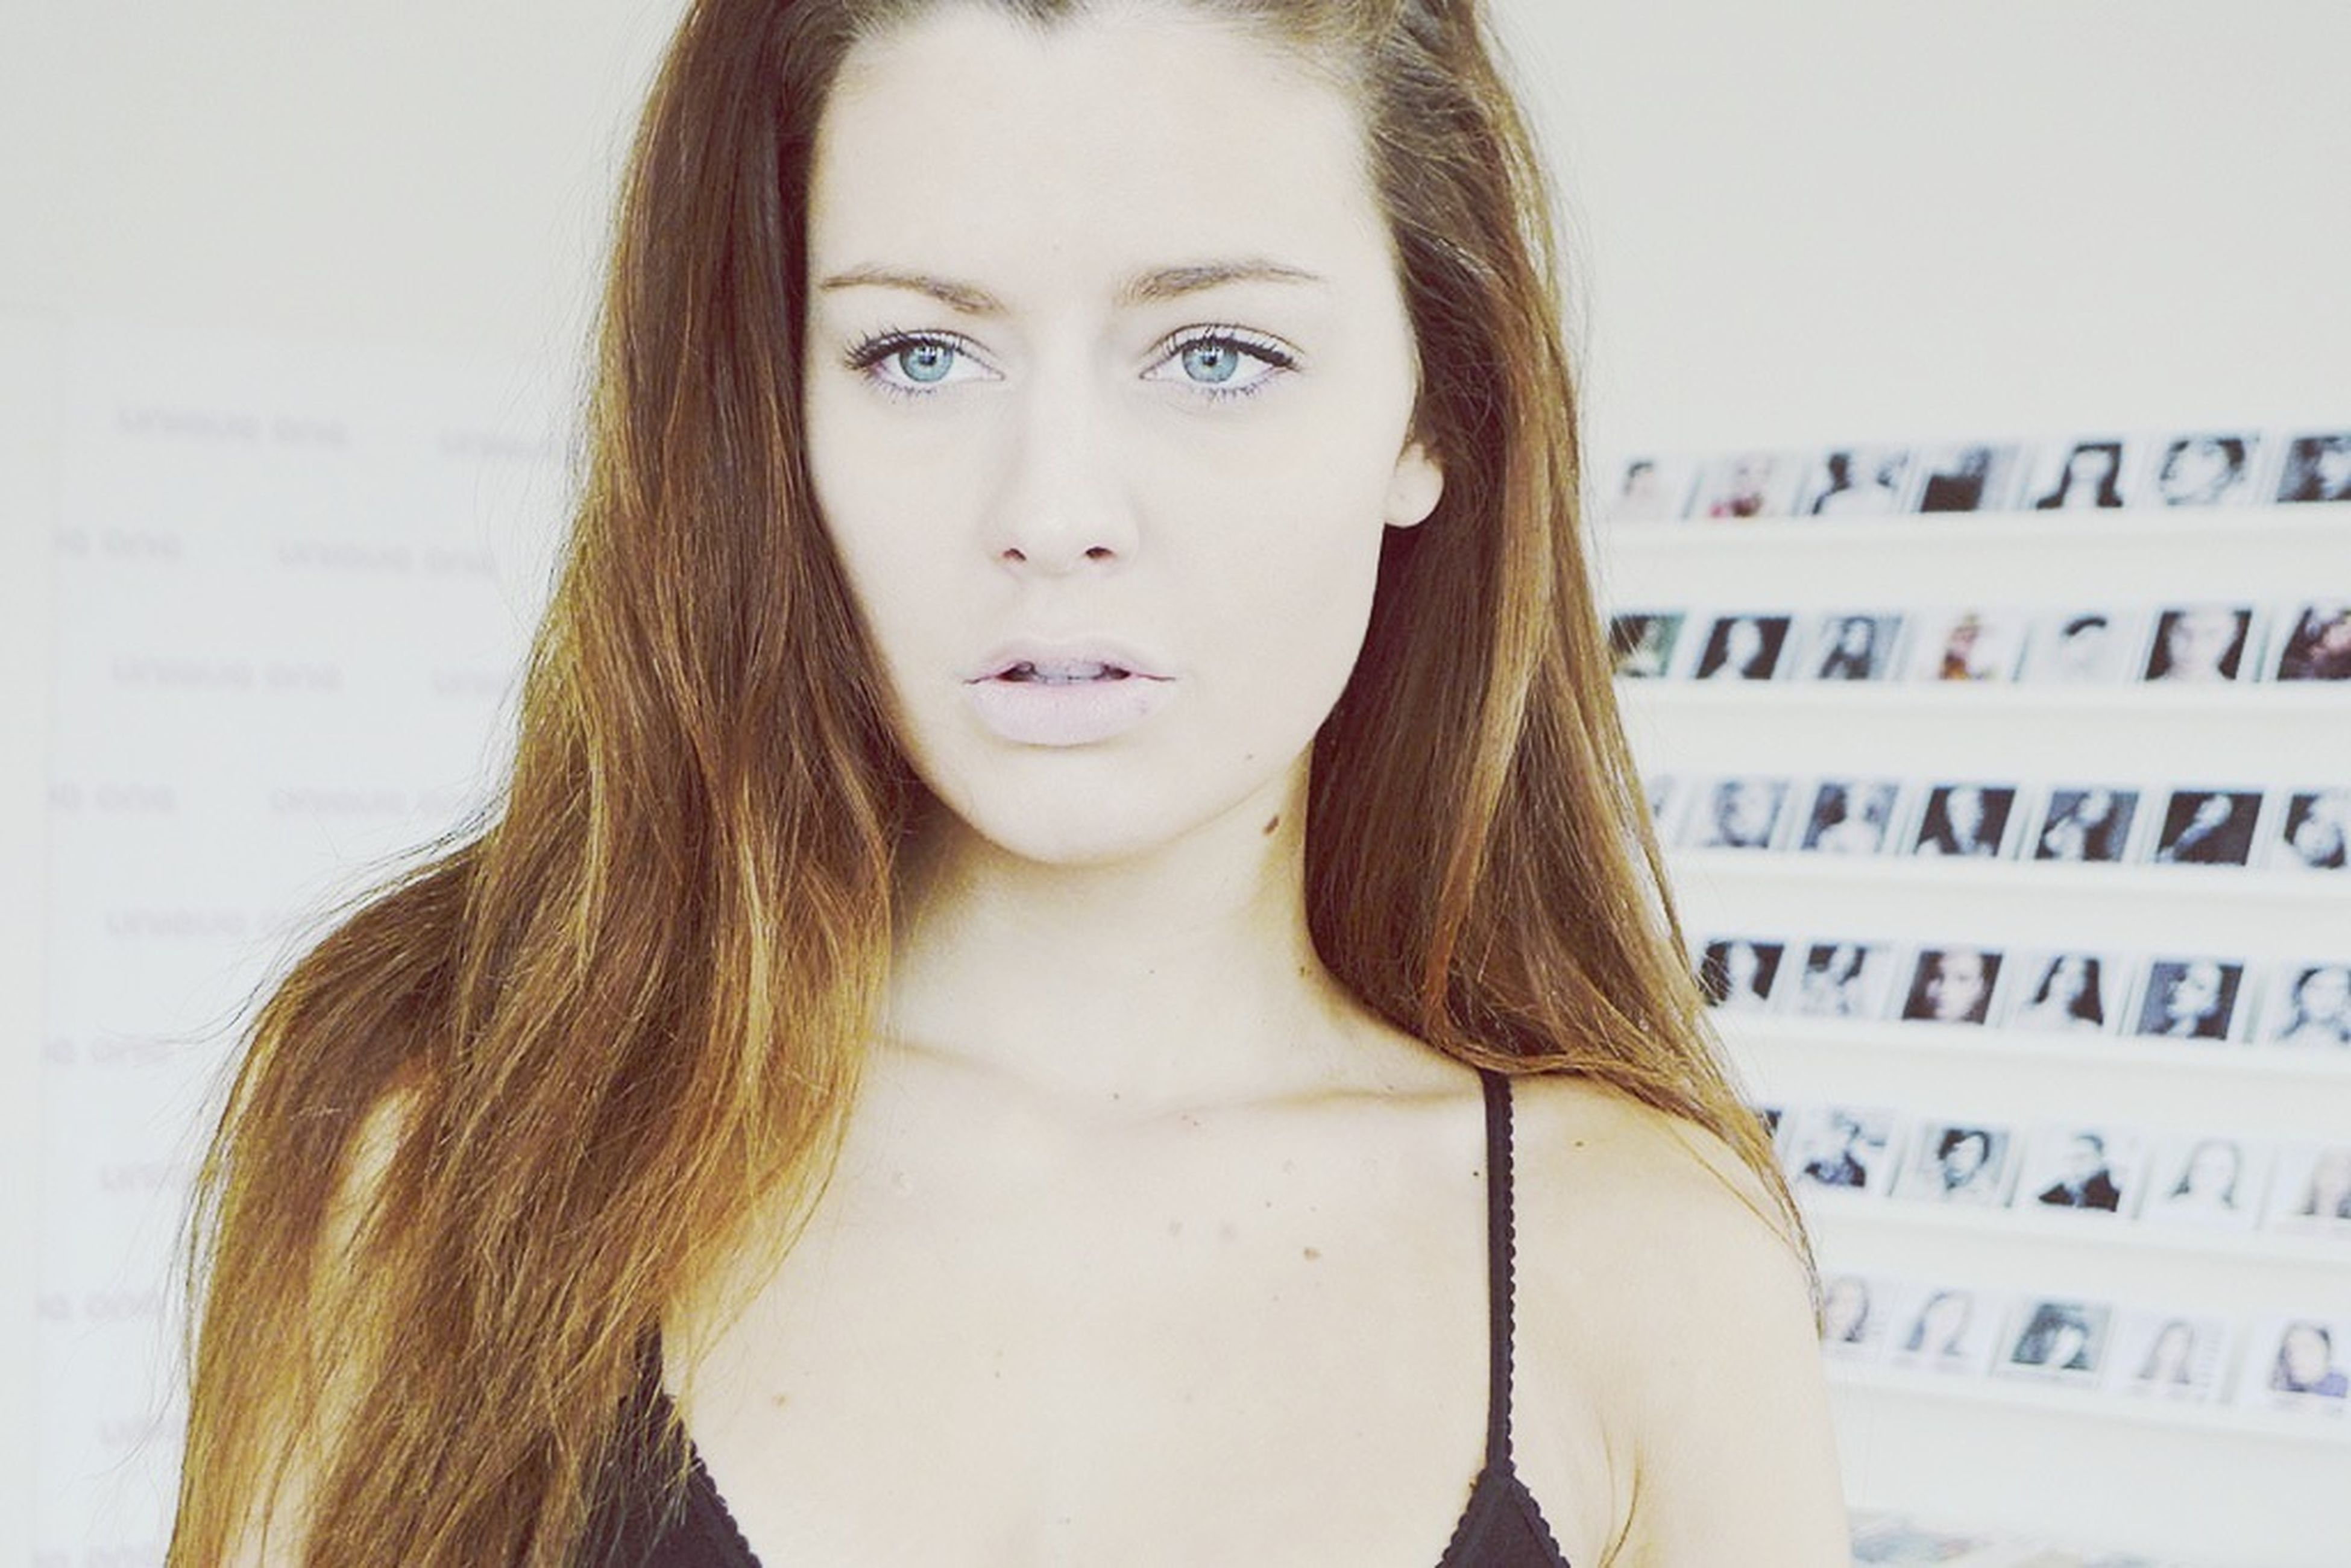 young women, young adult, long hair, headshot, person, lifestyles, front view, close-up, portrait, looking at camera, indoors, human face, beauty, head and shoulders, leisure activity, brown hair, femininity